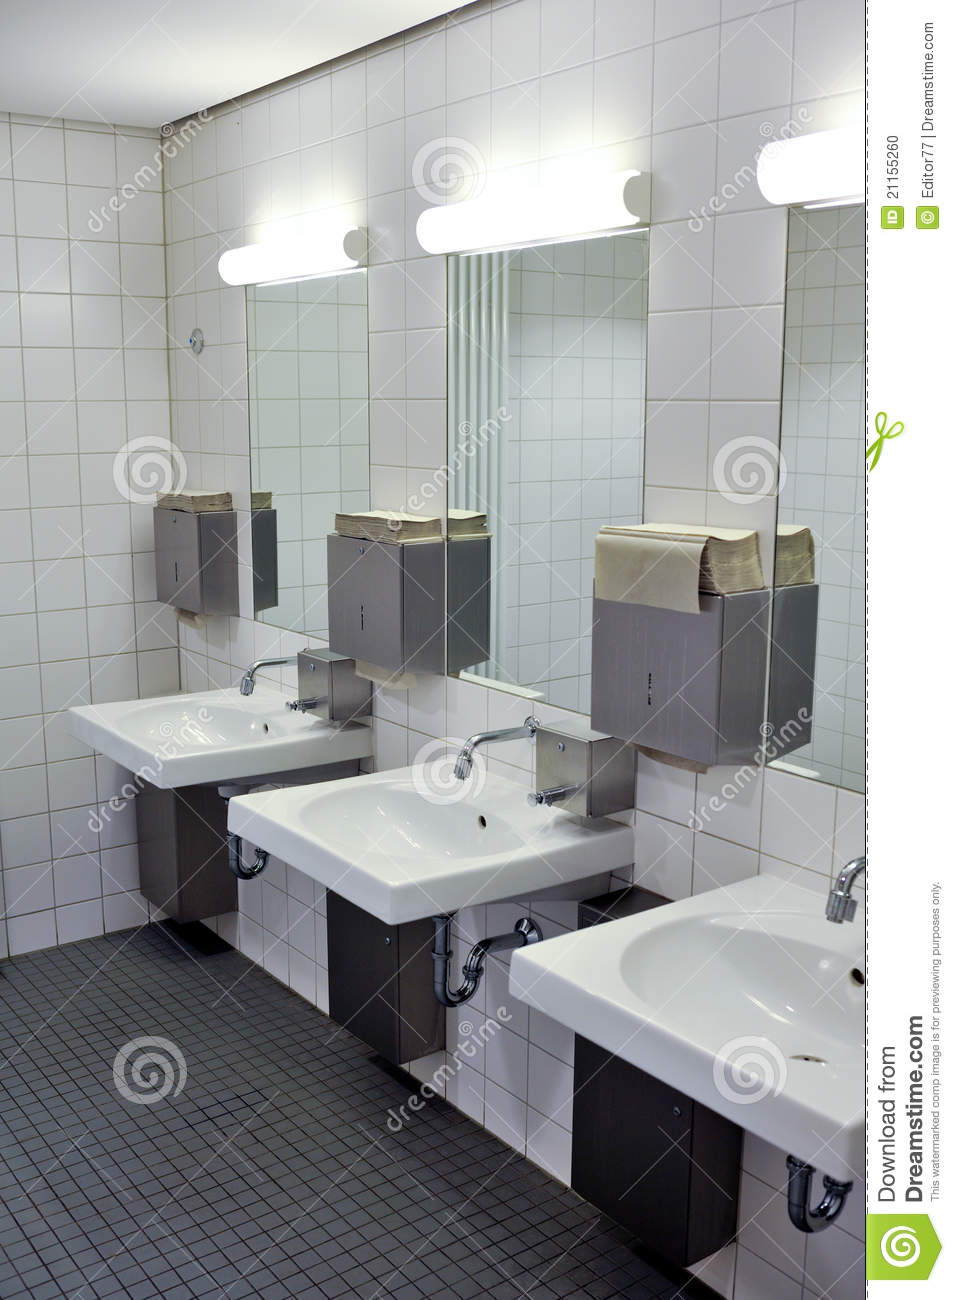 Luxury Public Bathroom With Mirrors And Sinks